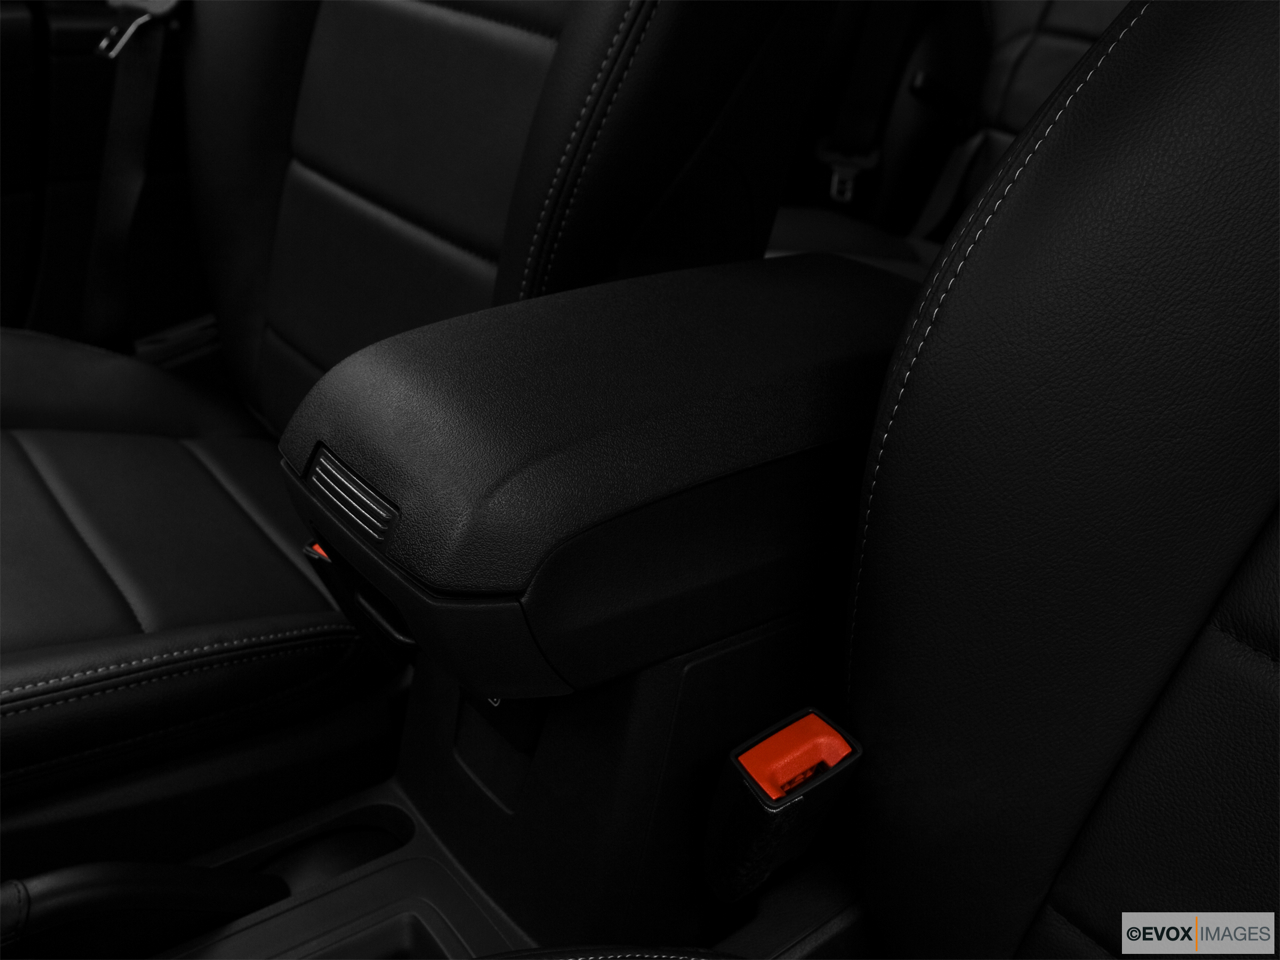 2010 Jeep Patriot Limited Front center console with closed lid, from driver's side looking down